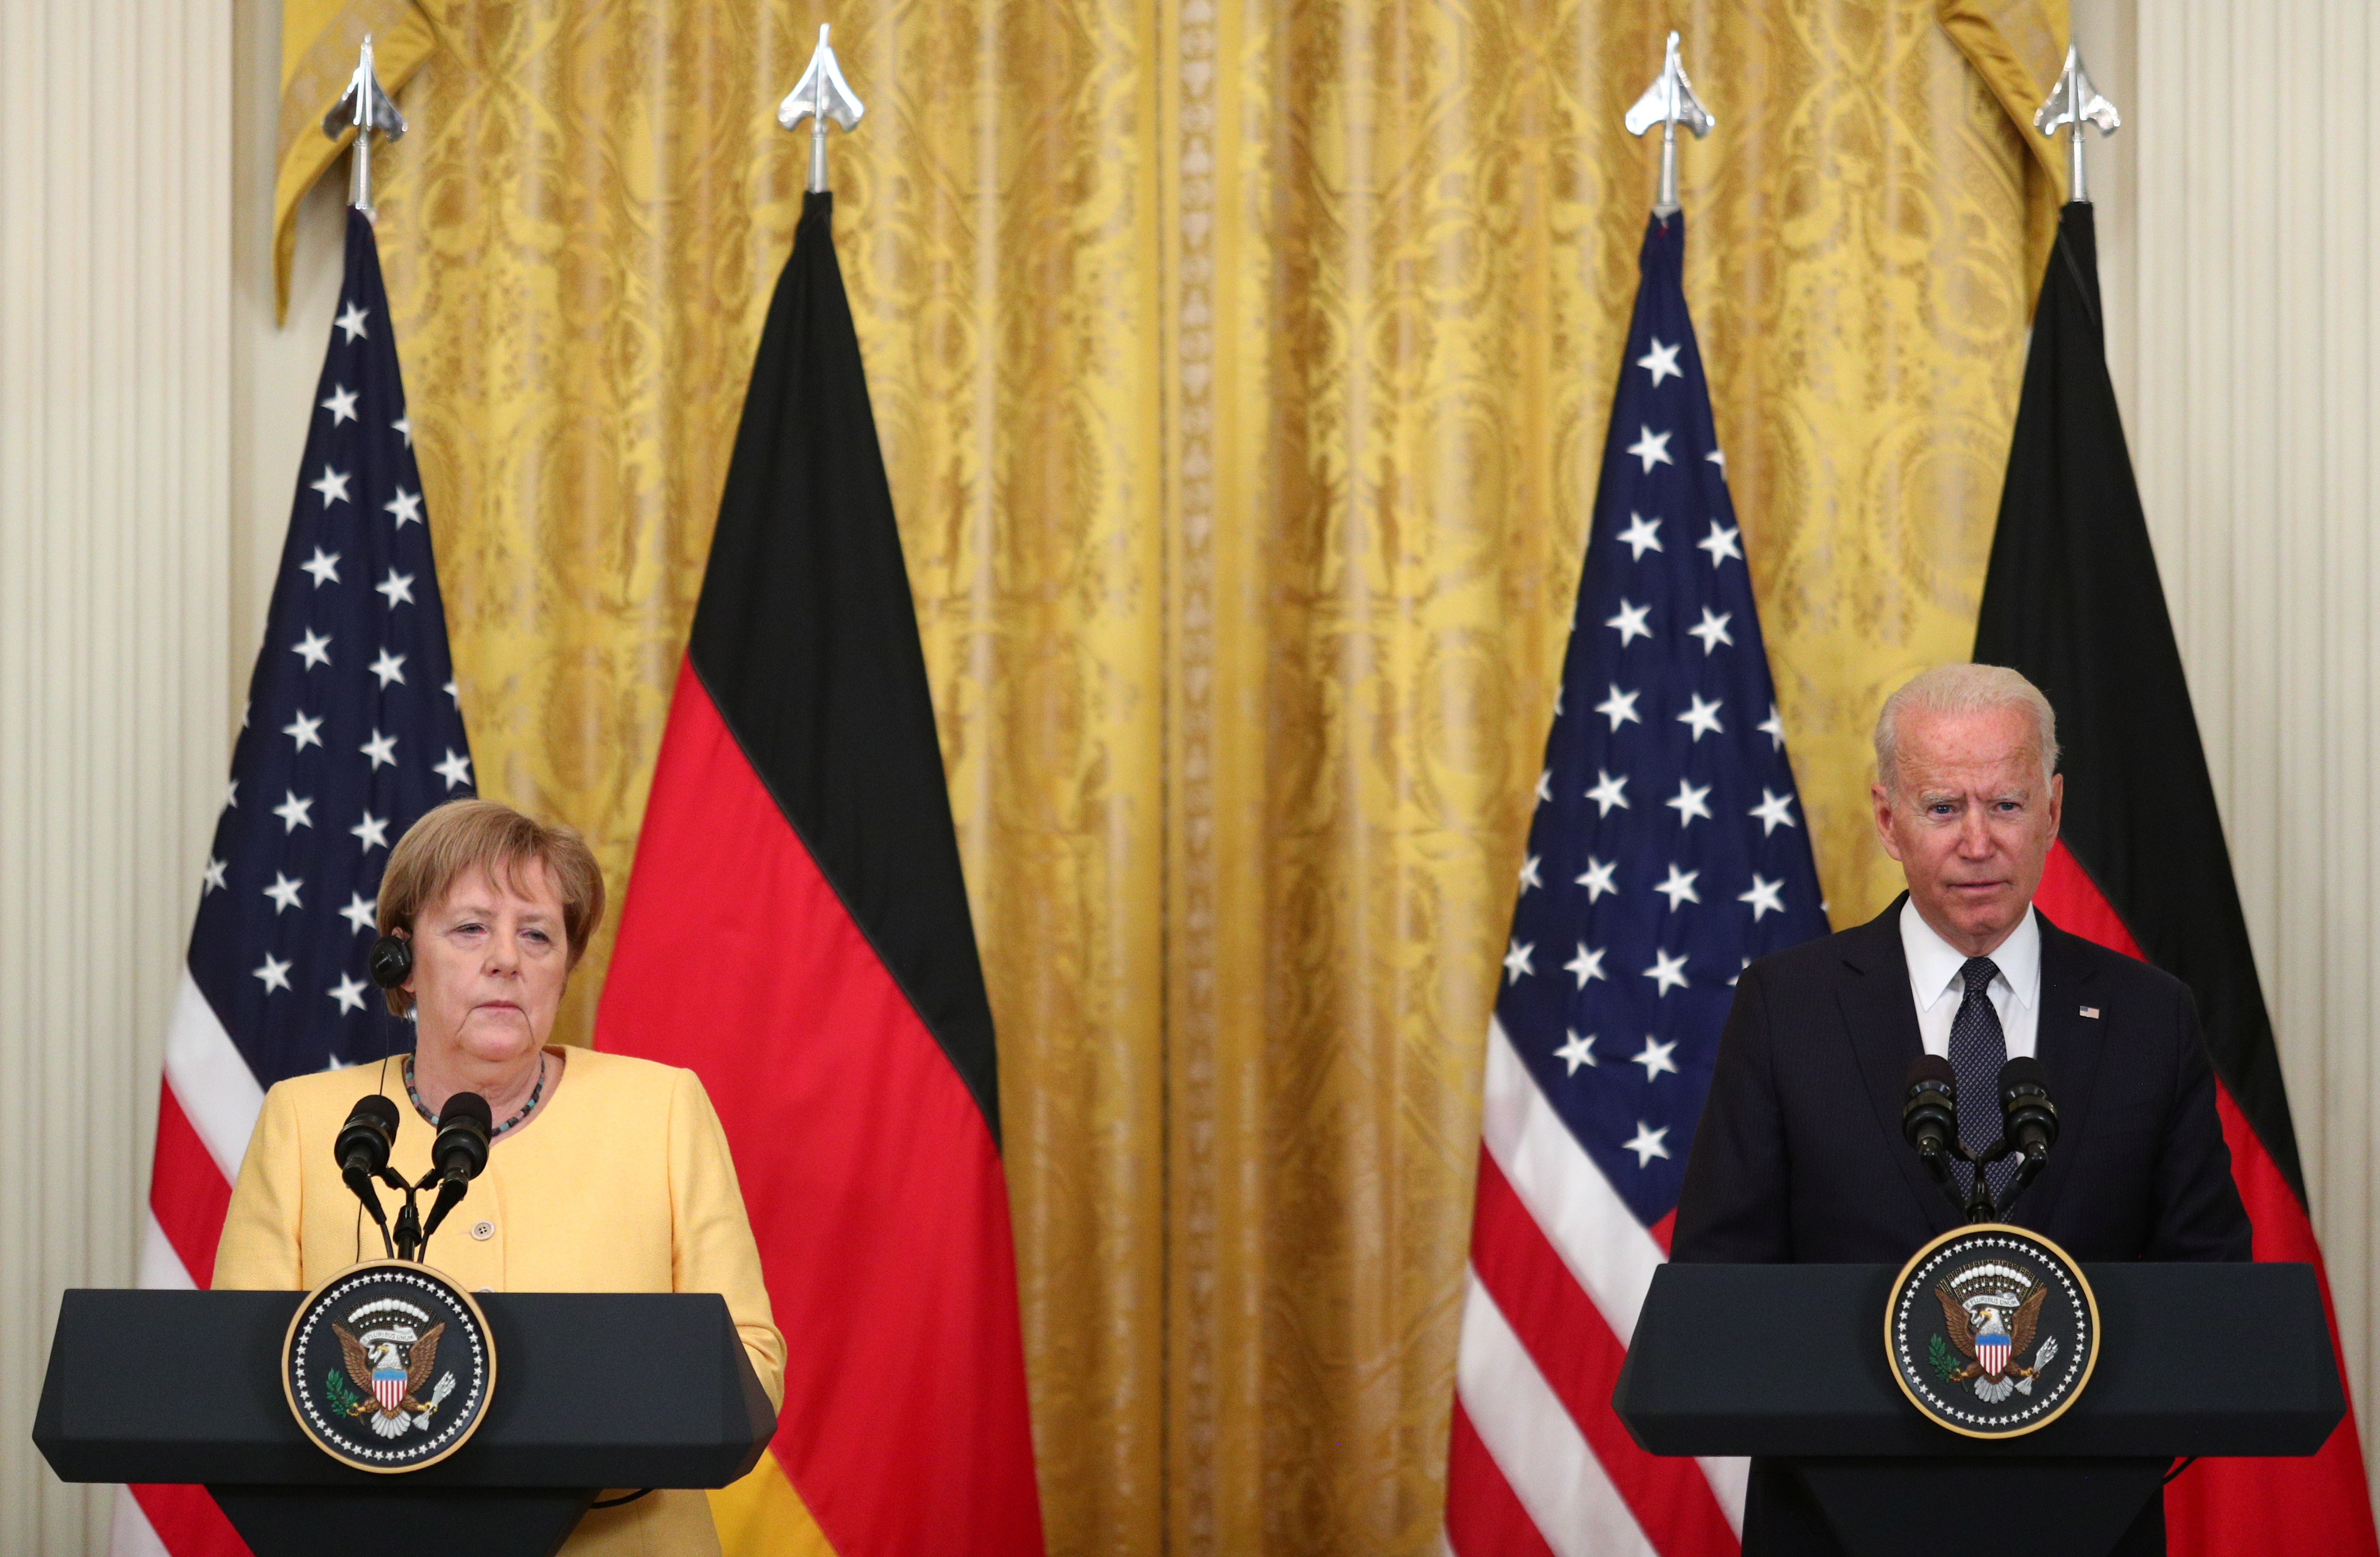 U.S. President Joe Biden and German Chancellor Angela Merkel attend a joint news conference in the East Room at the White House in Washington, U.S., July 15, 2021. REUTERS/Tom Brenner